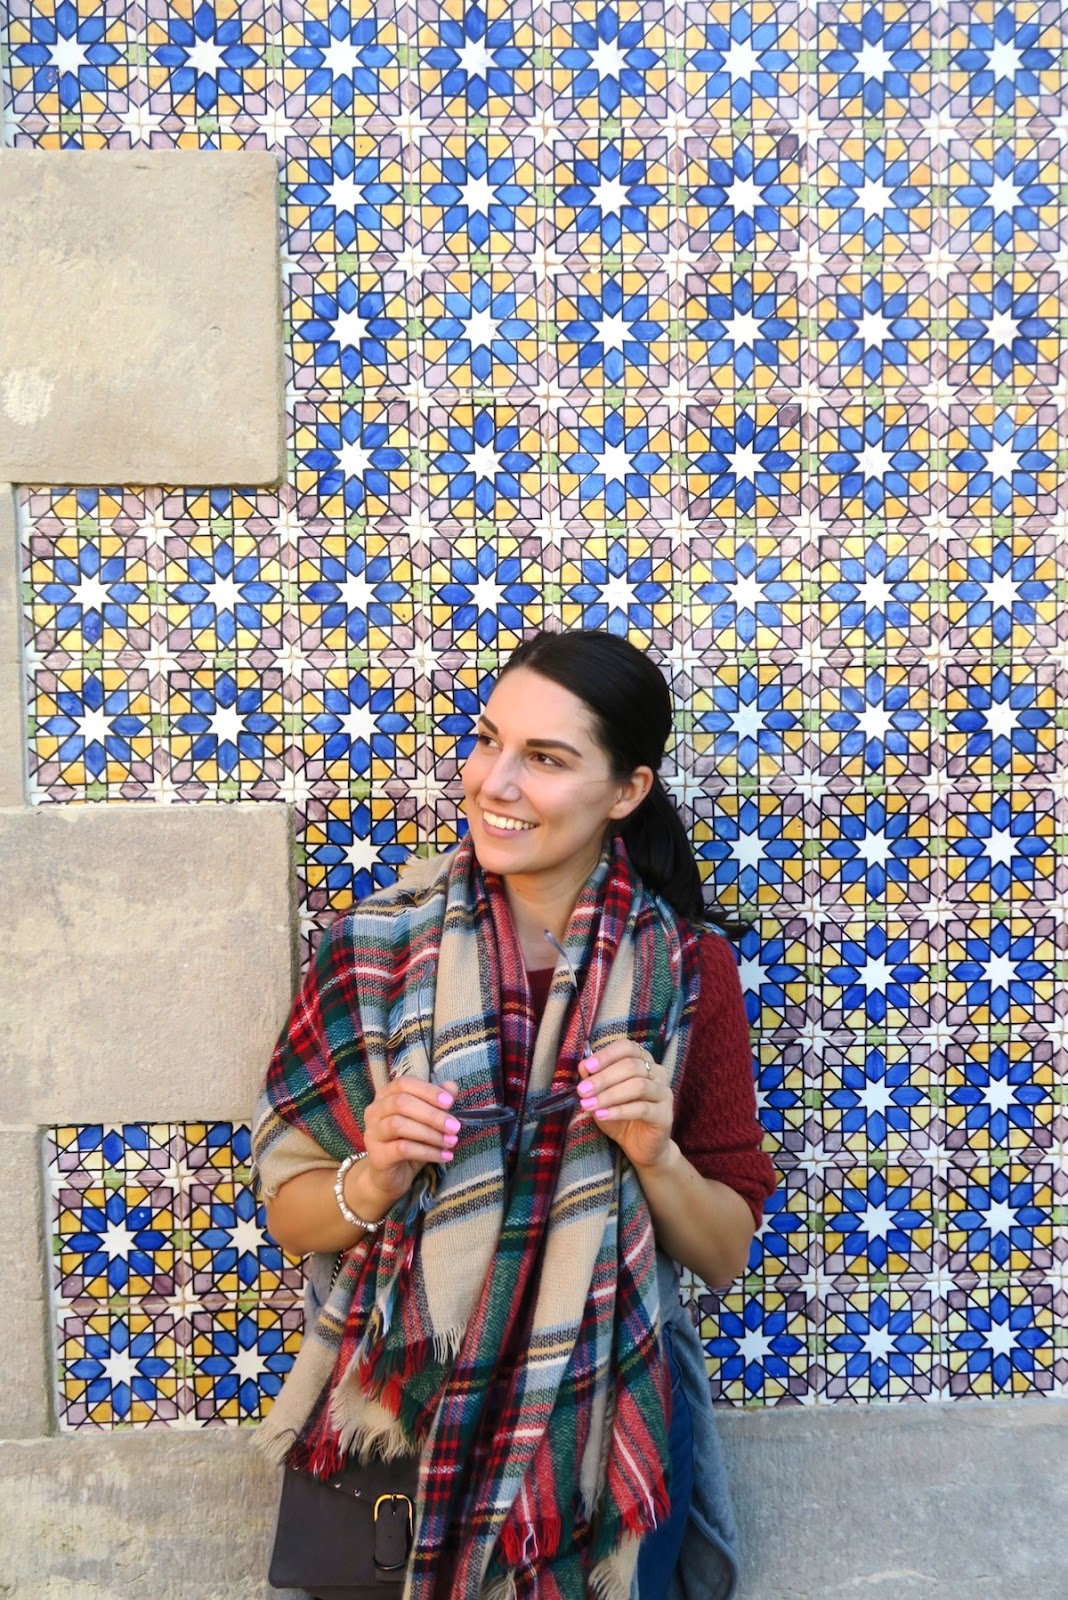 This is a close up of me standing at the Pena Palace with some beautiful tile work behind me. I'm holding my sunglasses and wearing my holiday inspired scarf.